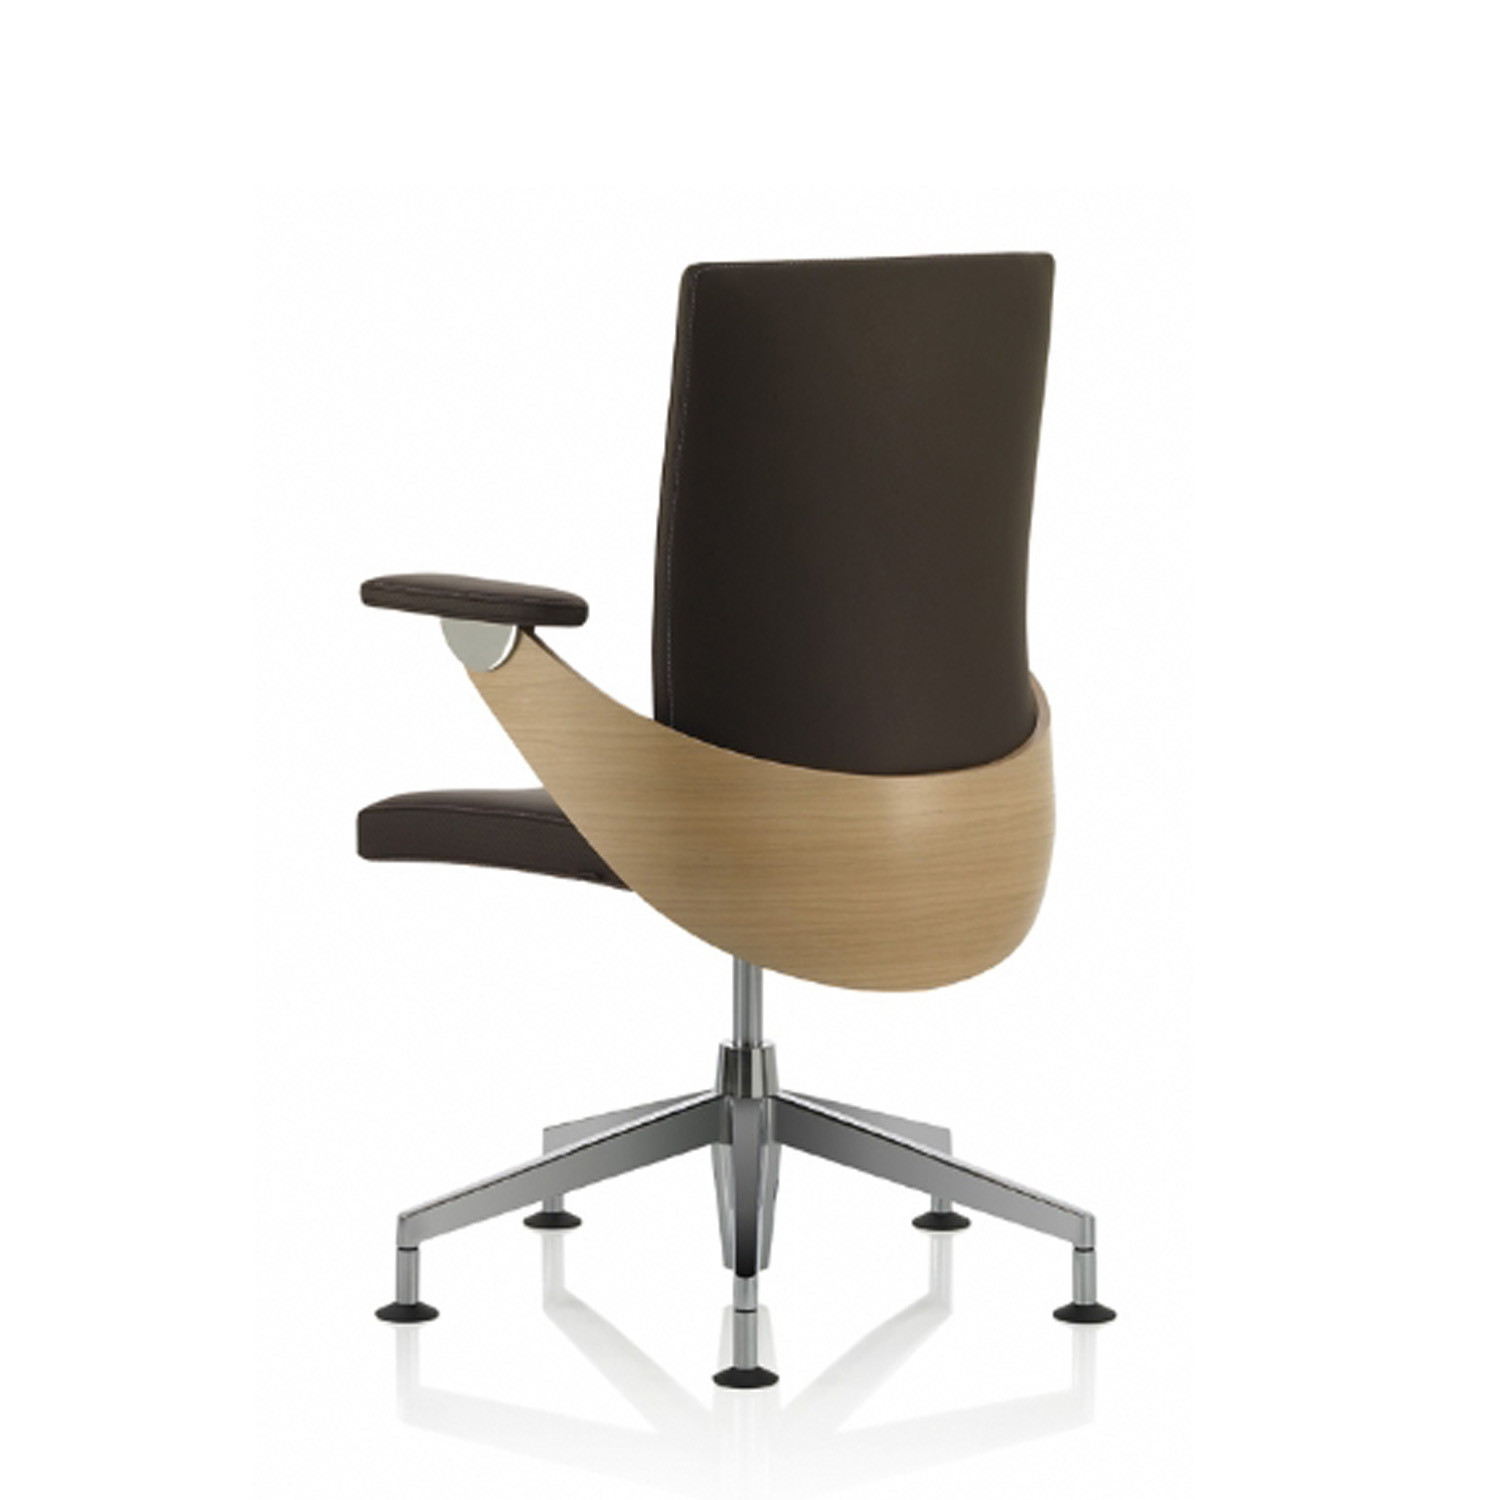 swivel chair operations metal dining chairs industrial lusso luxe ergonomic office seating apres furniture